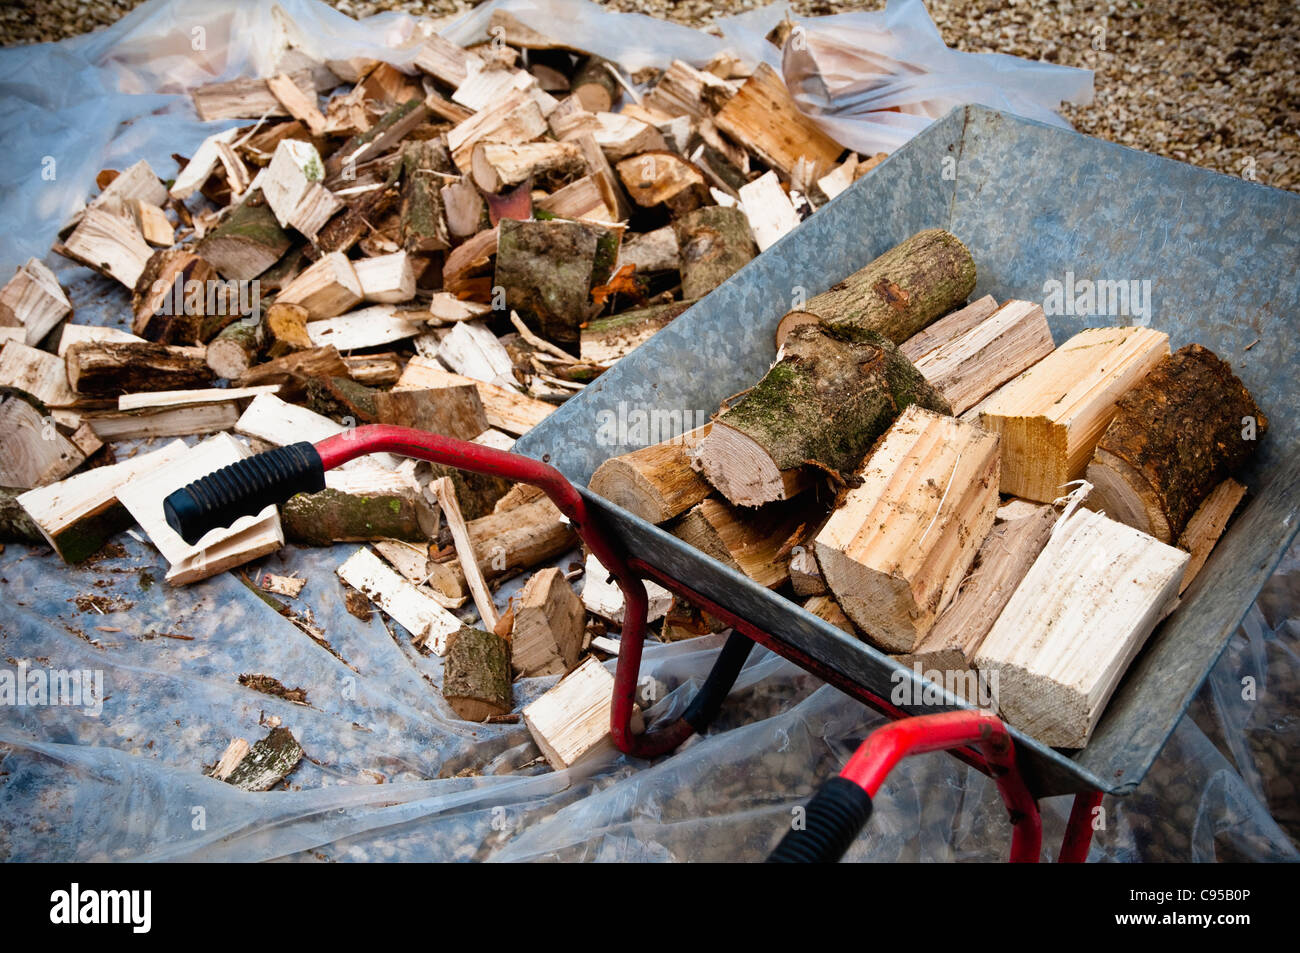 Winter firewood - loading a delivery of logs into a wheelbarrow. UK - Stock Image